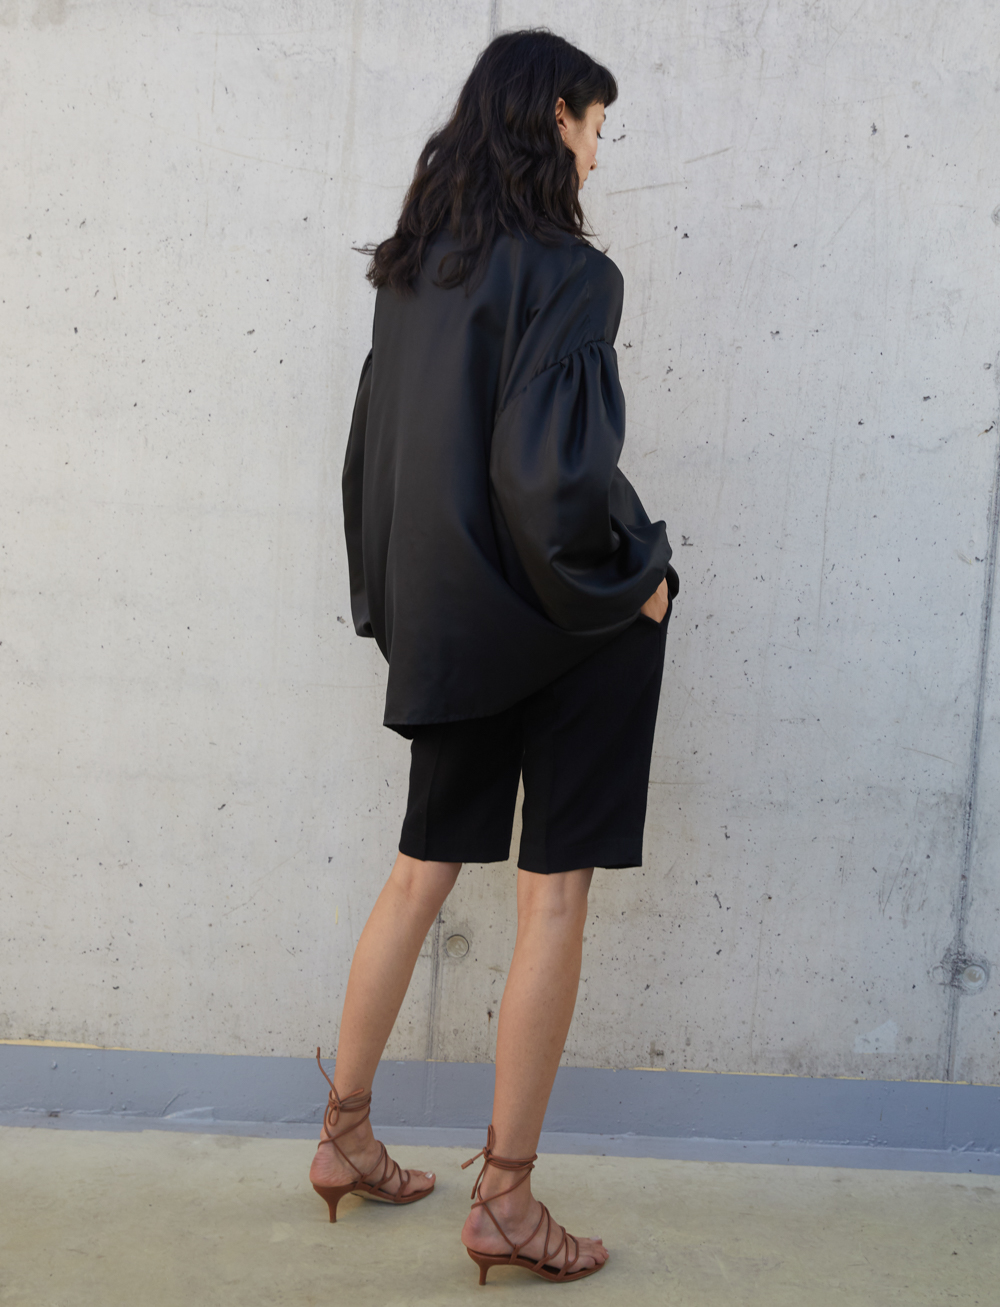 Maree Shirt - Black by Manurí on curated-crowd.com